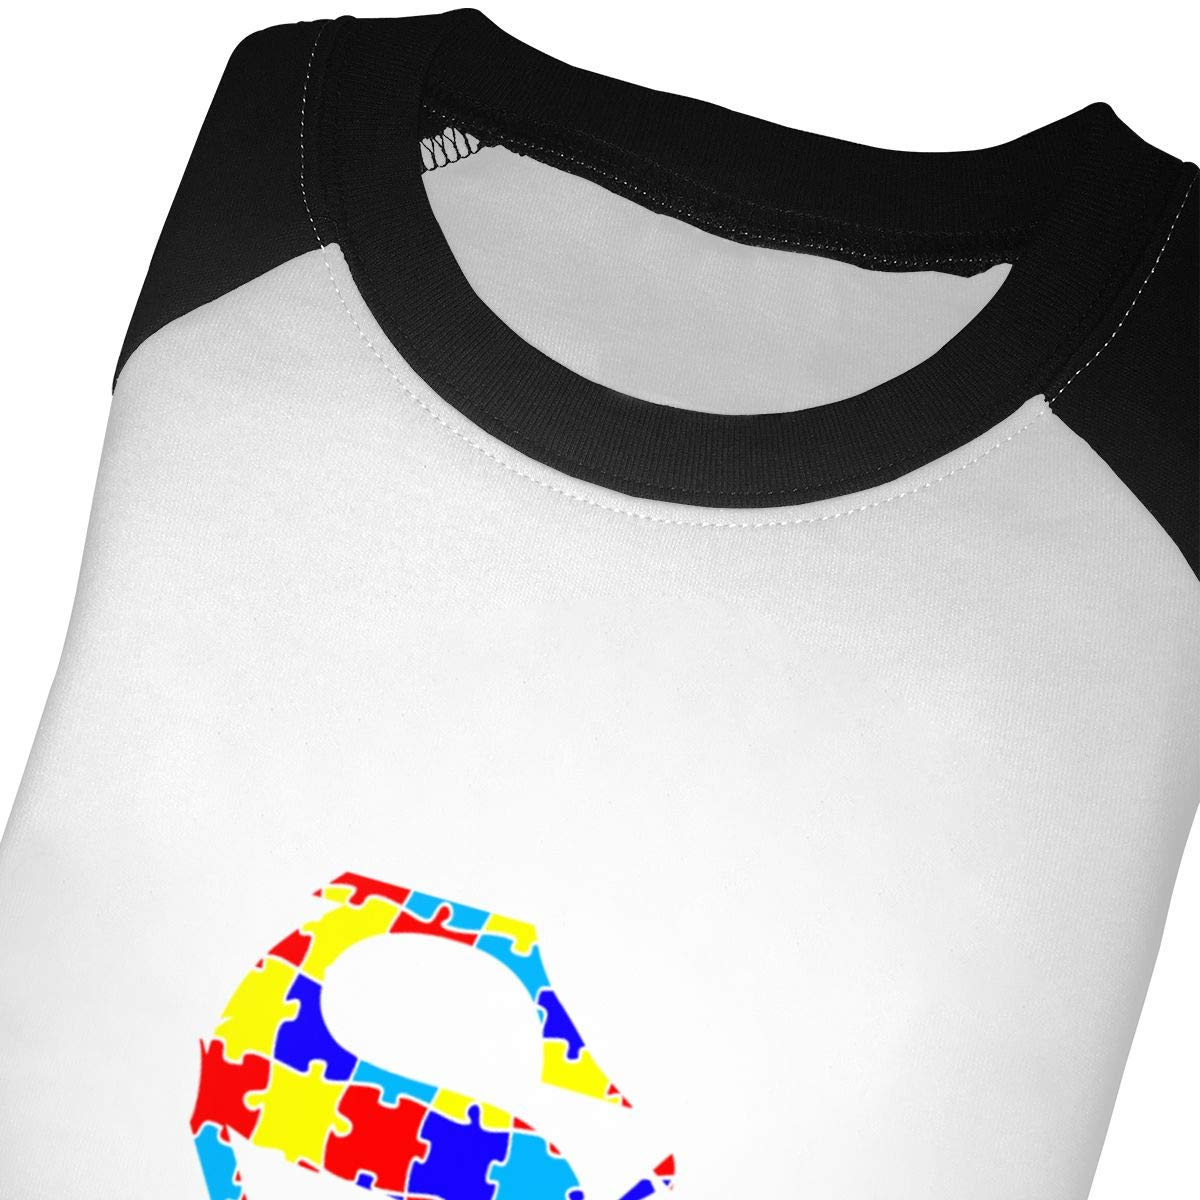 Manlee Autism Awareness Unisex 100/% Cotton Childrens 3//4 Sleeves T-Shirt Top Tees 2T~5//6T